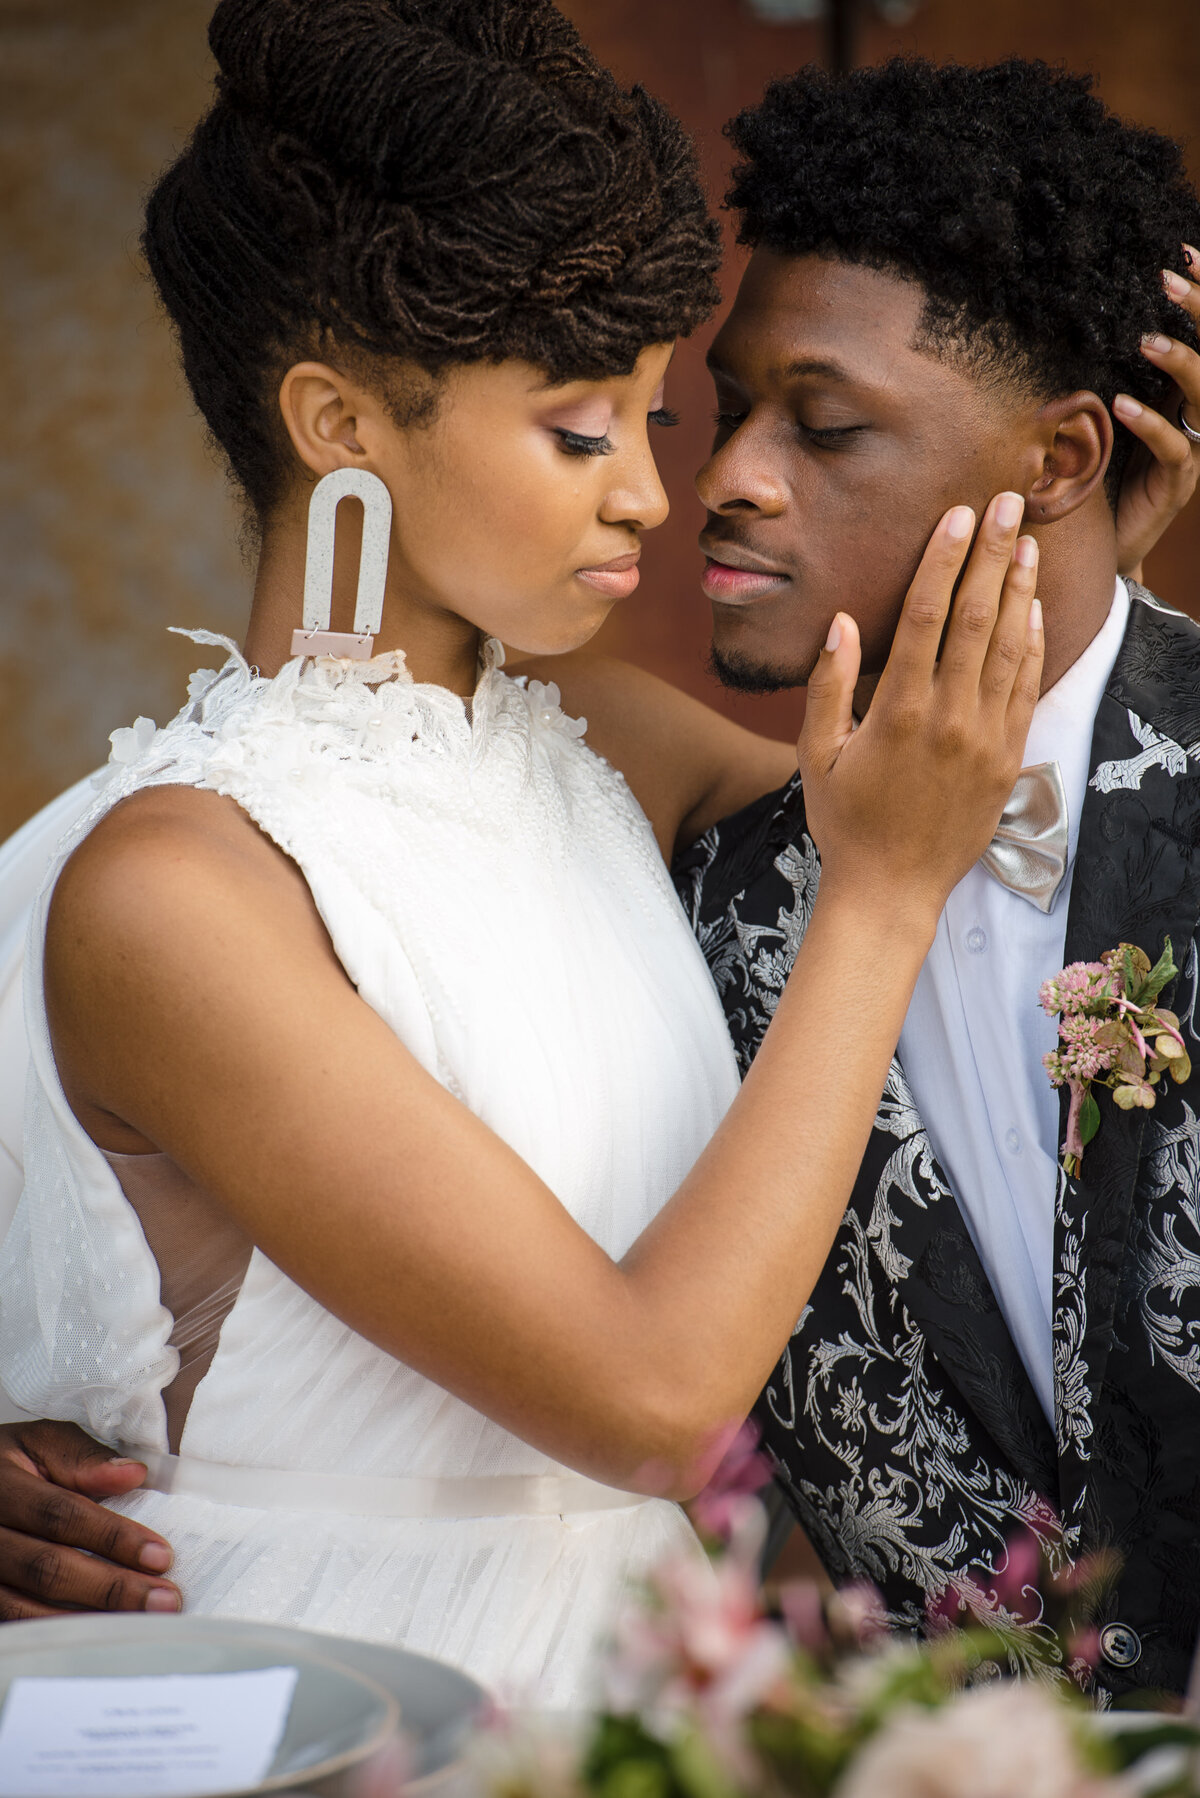 African American bride and groom romantic kiss